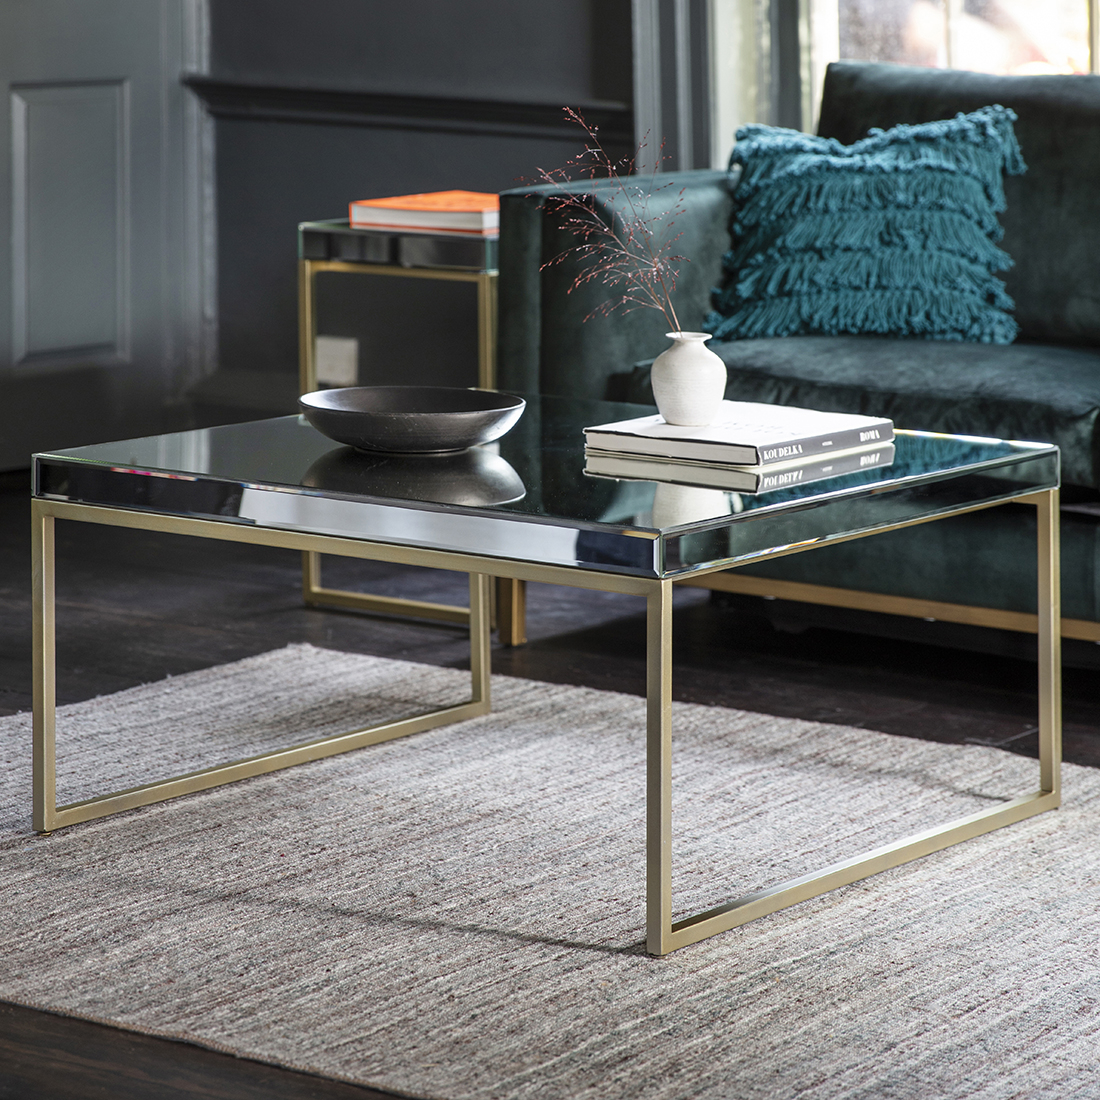 Champagne Gold Mirrored Coffee Table Primrose Plum intended for size 1100 X 1100